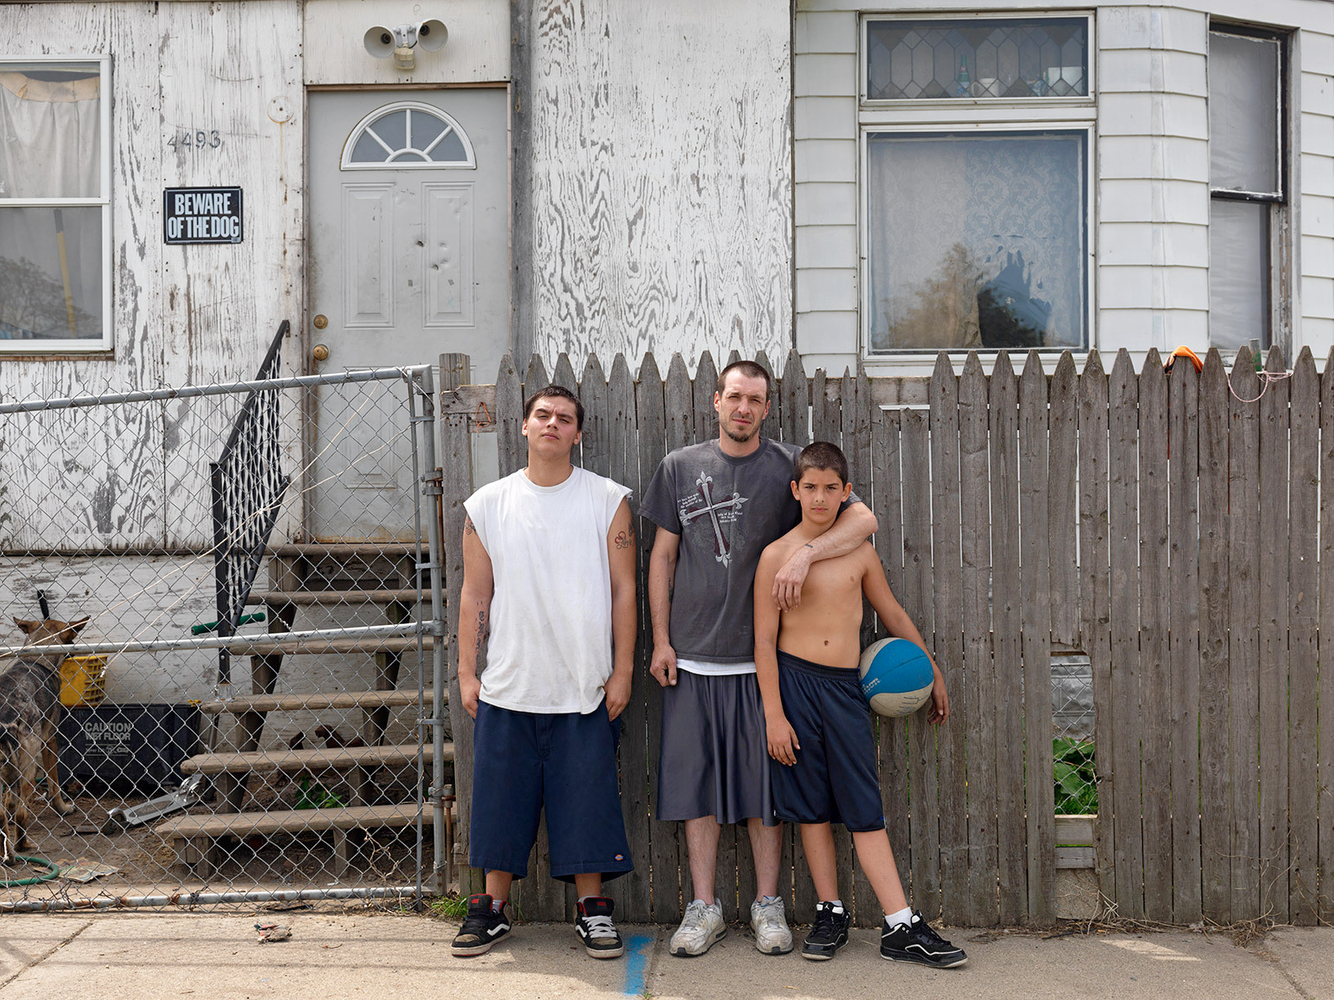 A Father with His Two Sons, 35th Street, Mexicantown, Detroit 2012